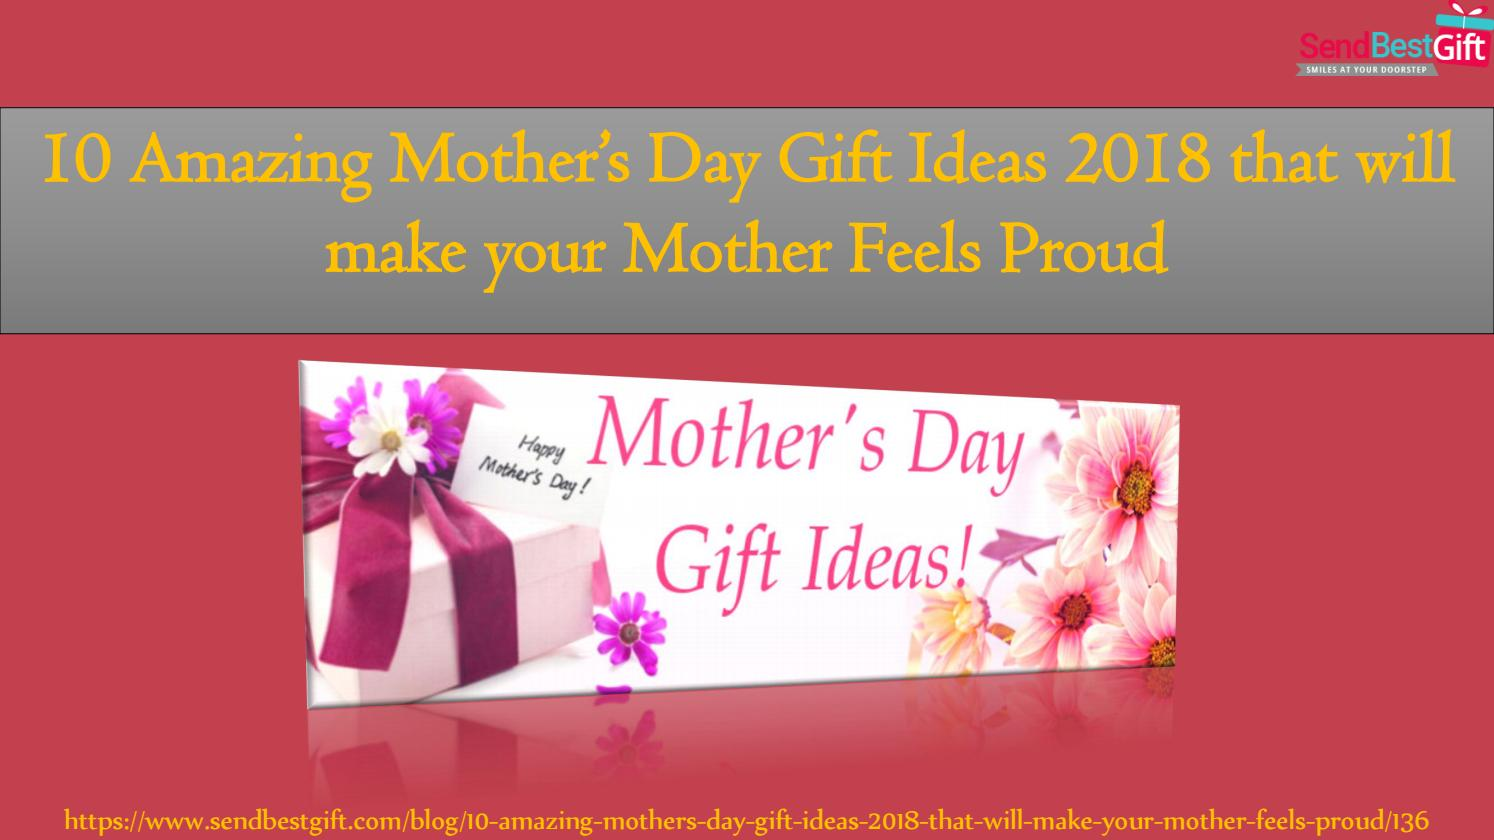 54207c52e152 10 amazing mother's day gift ideas 2018 that will make your mother feels  proud by Send Best Gift - issuu